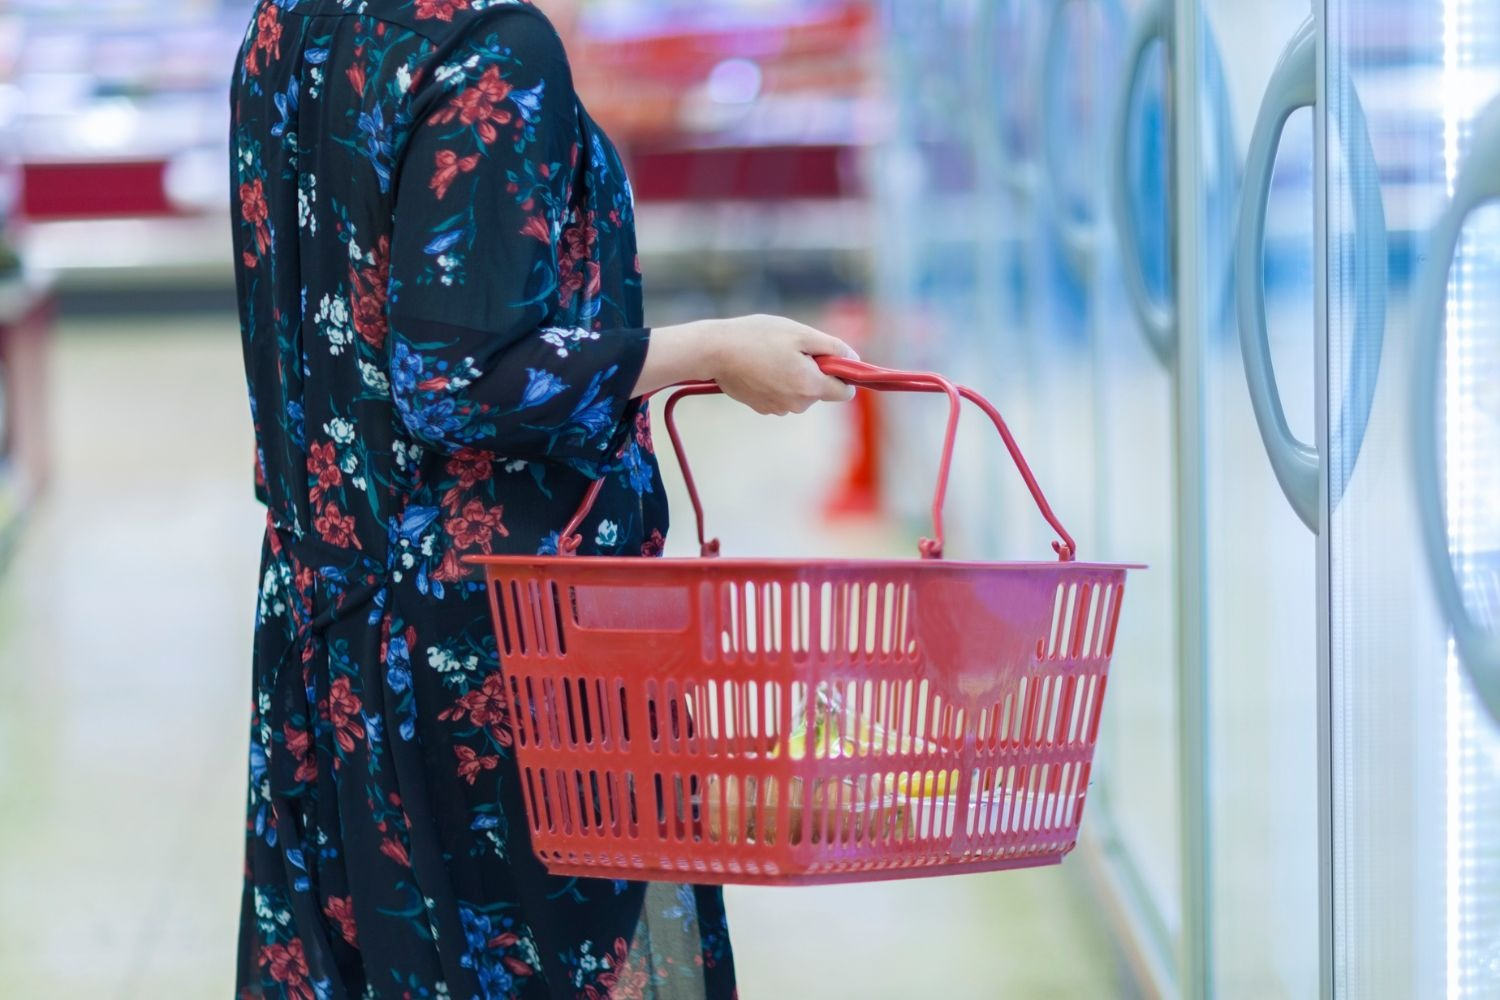 Woman standing in supermarket aisle carrying a red shopping basket